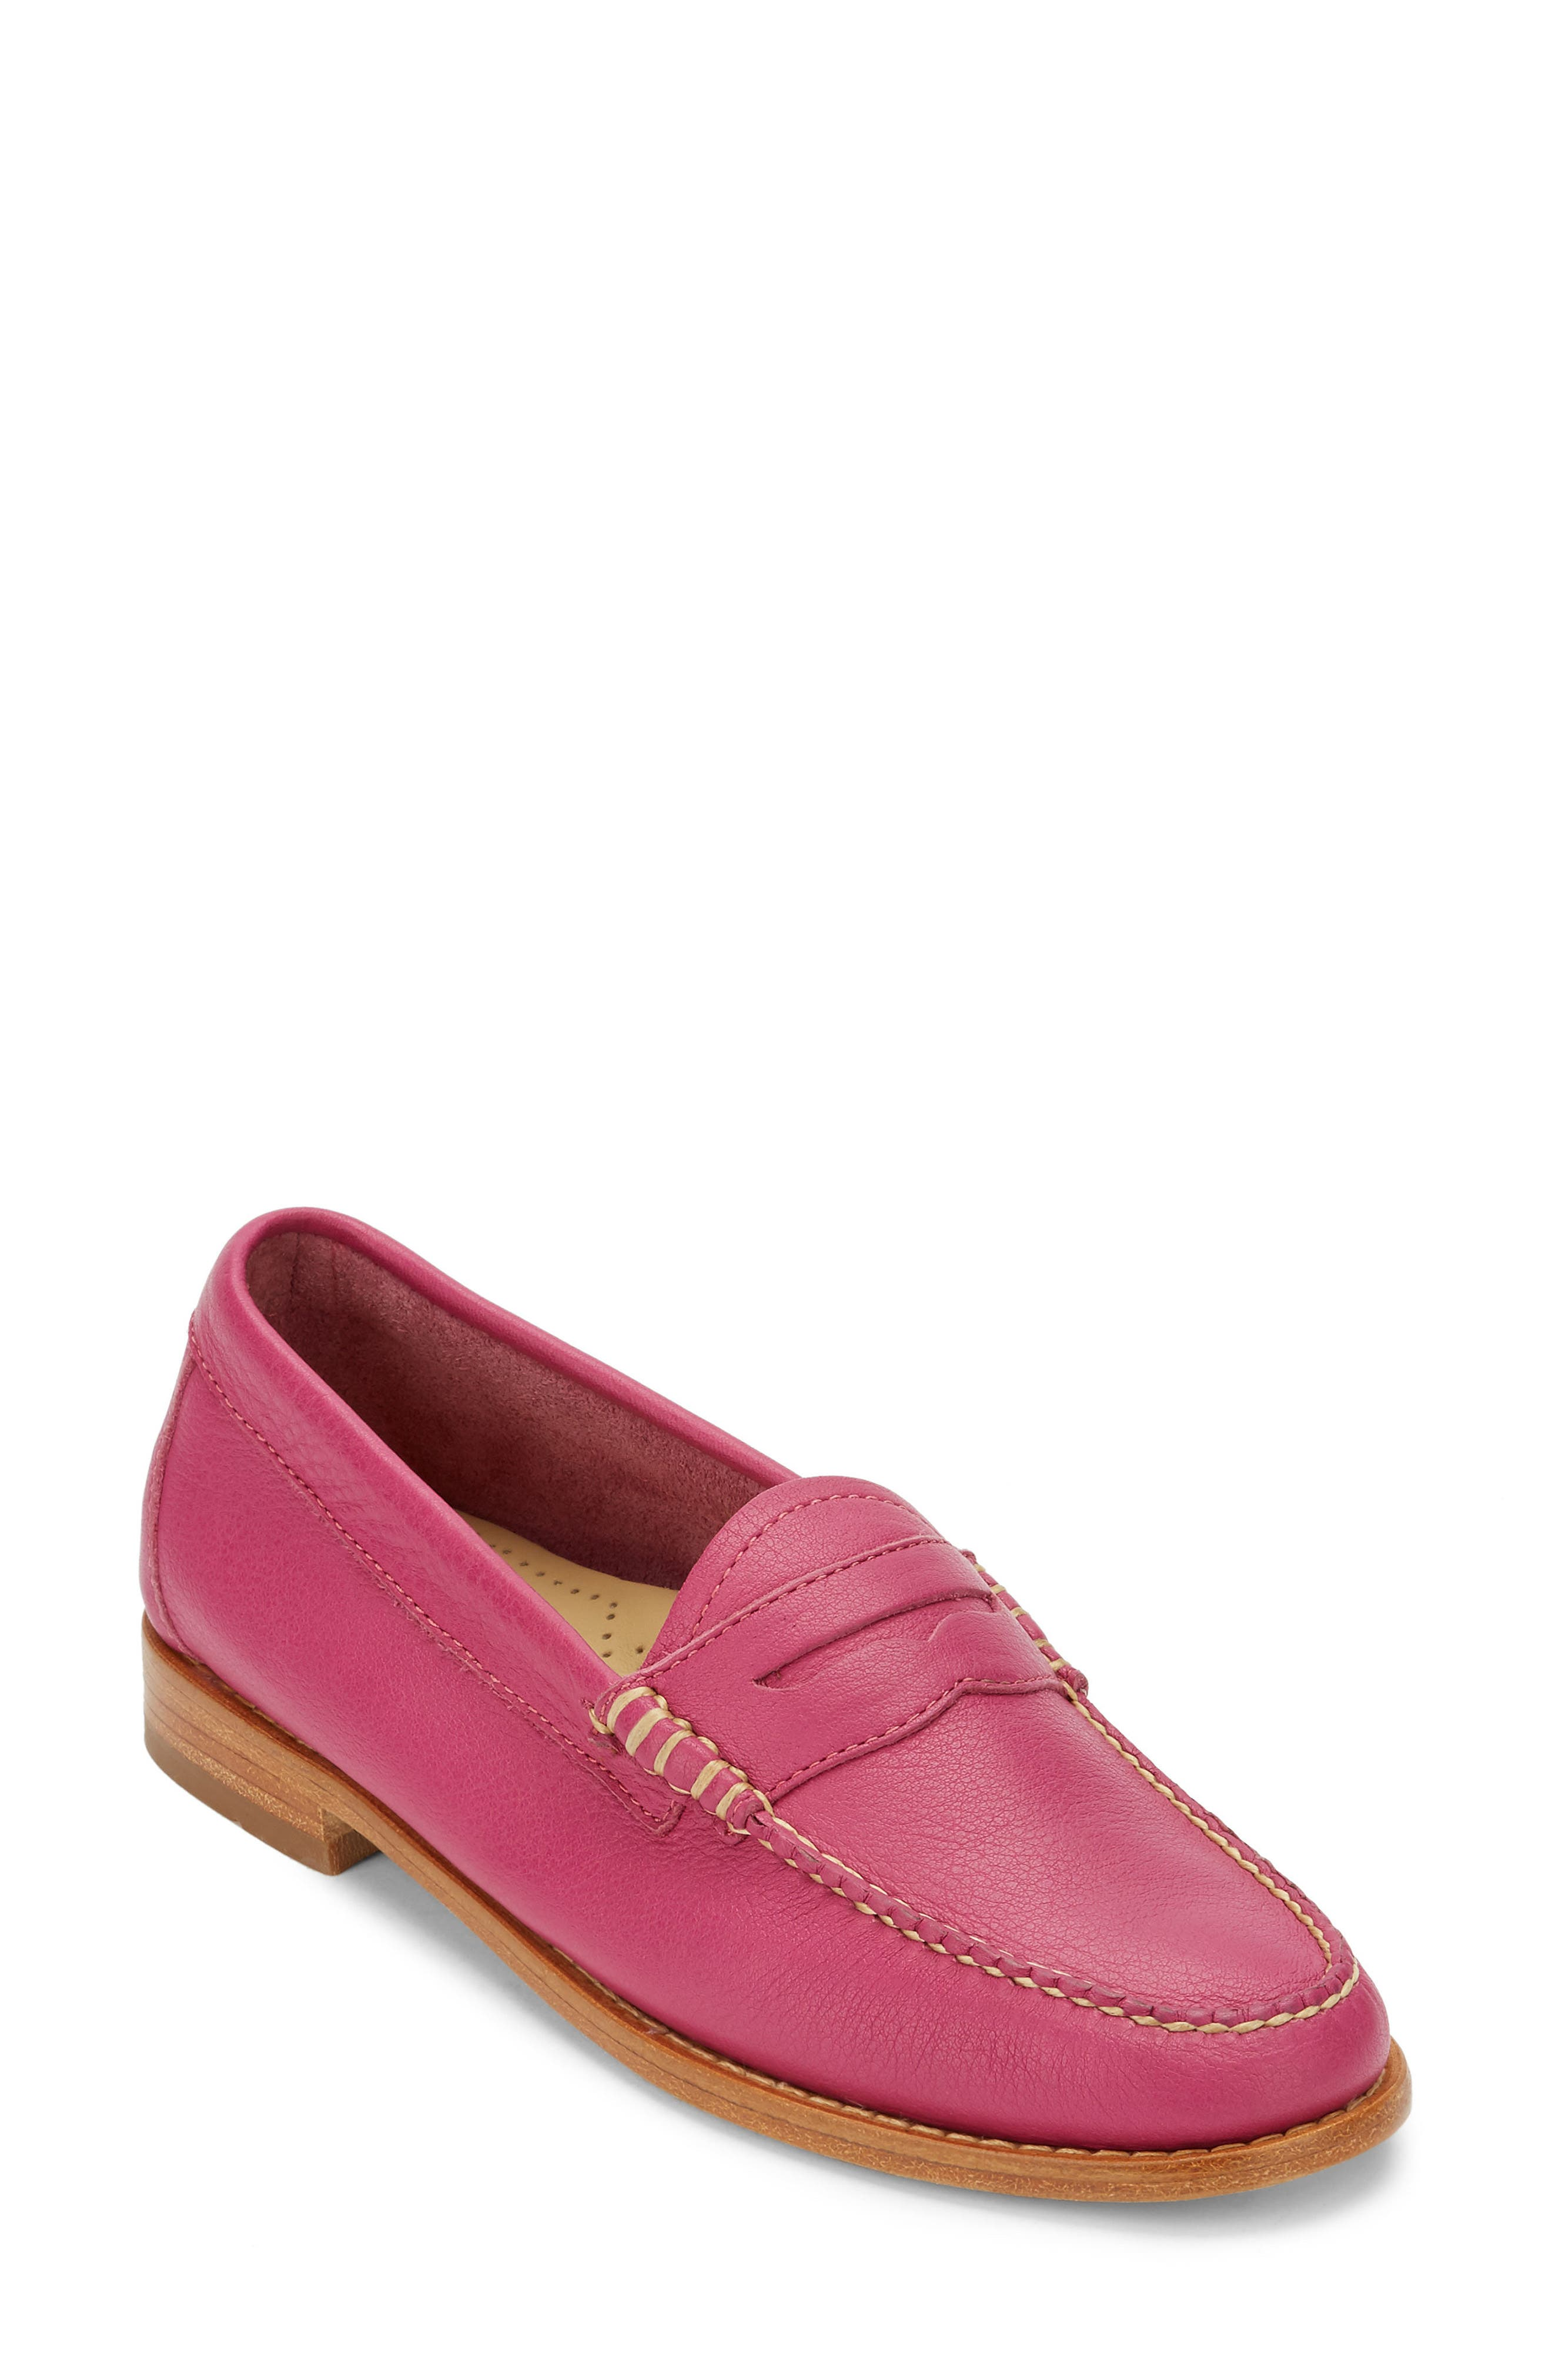 'Whitney' Loafer,                             Main thumbnail 40, color,